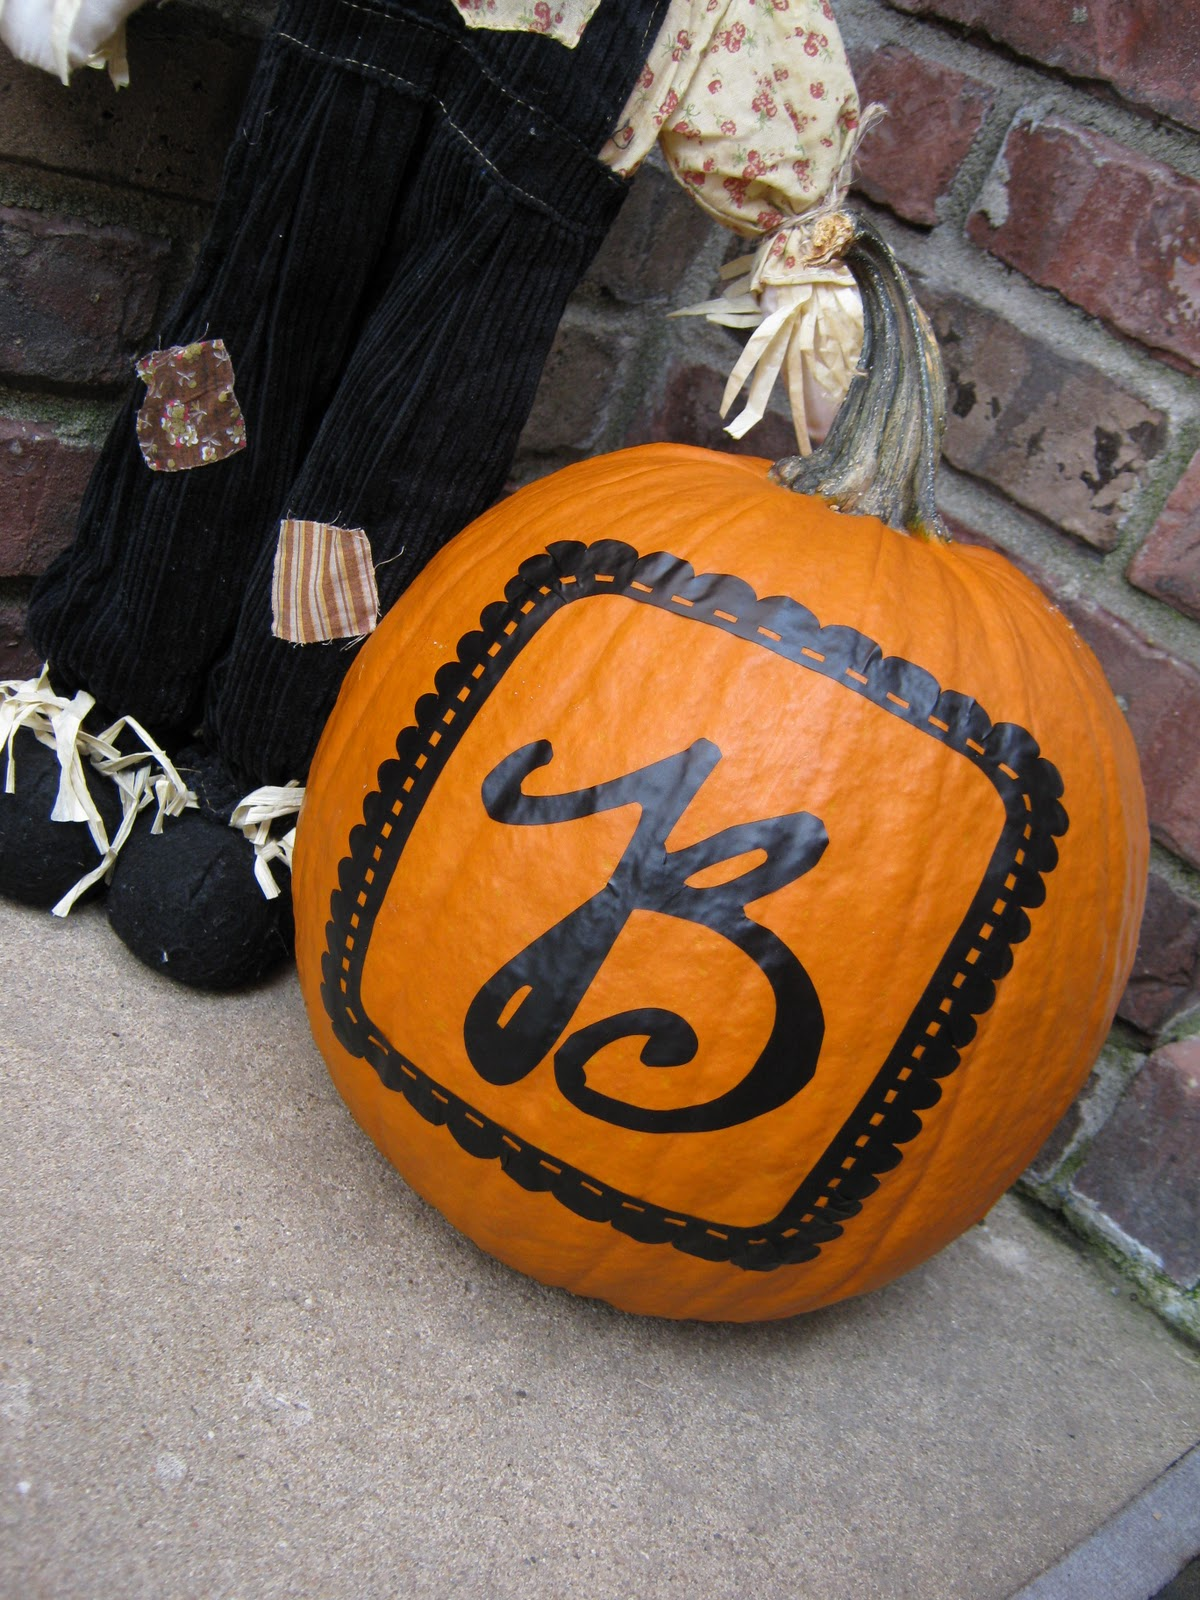 Ginger snap crafts monster monday monogrammed pumpkin for Monogram pumpkin templates